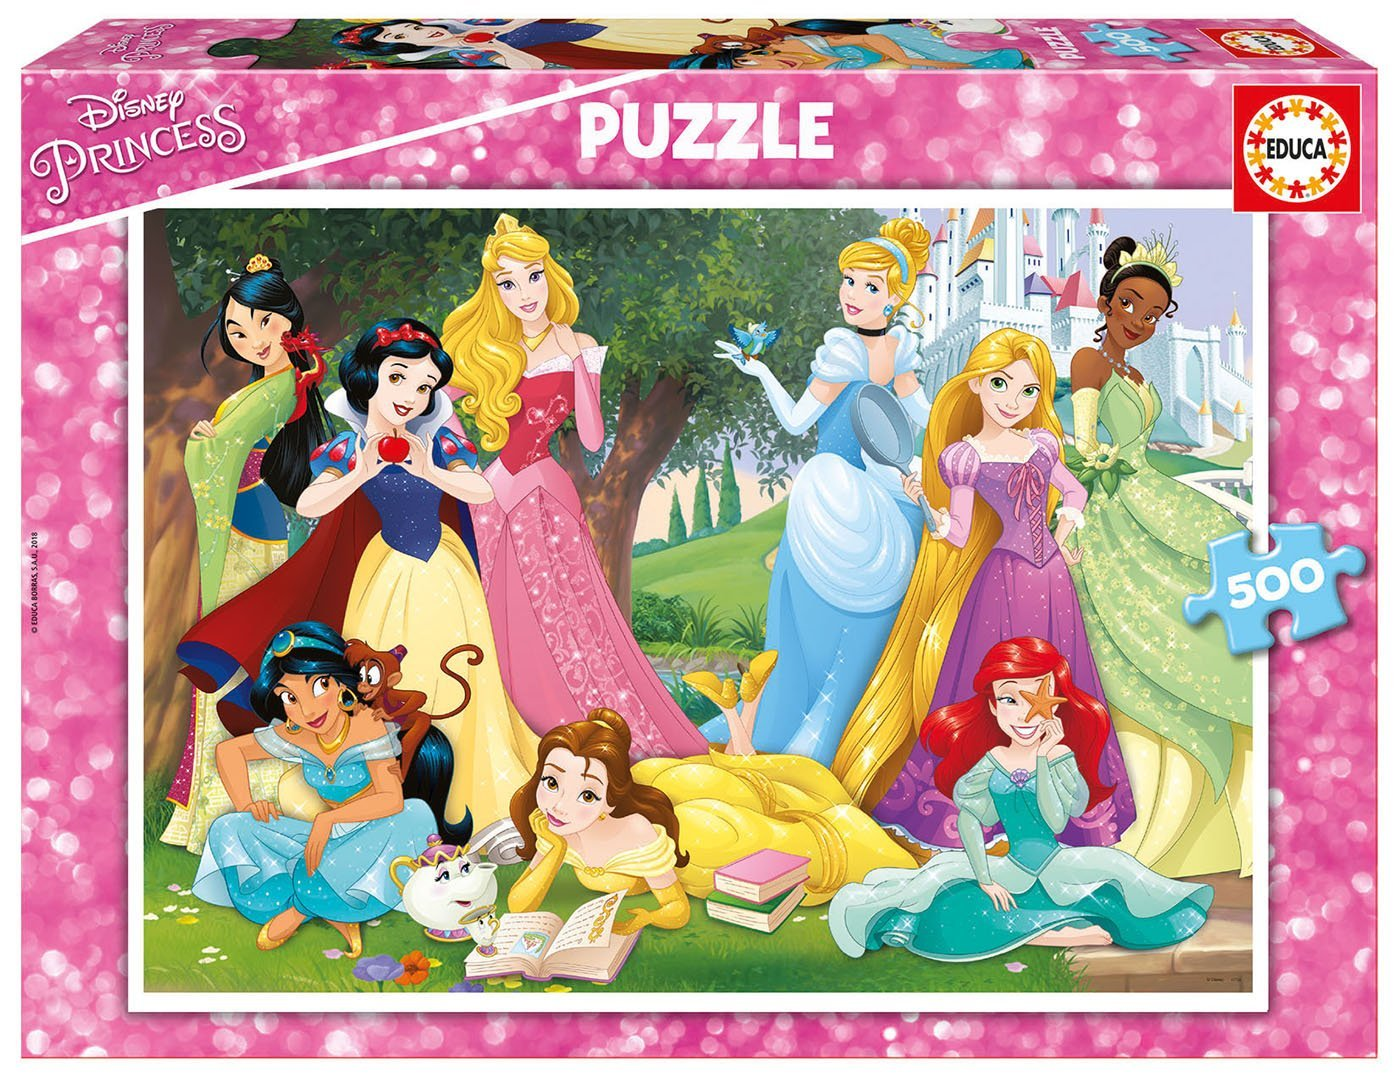 Puzzle Disney Princess Educa 17723 500 Pieces Jigsaw